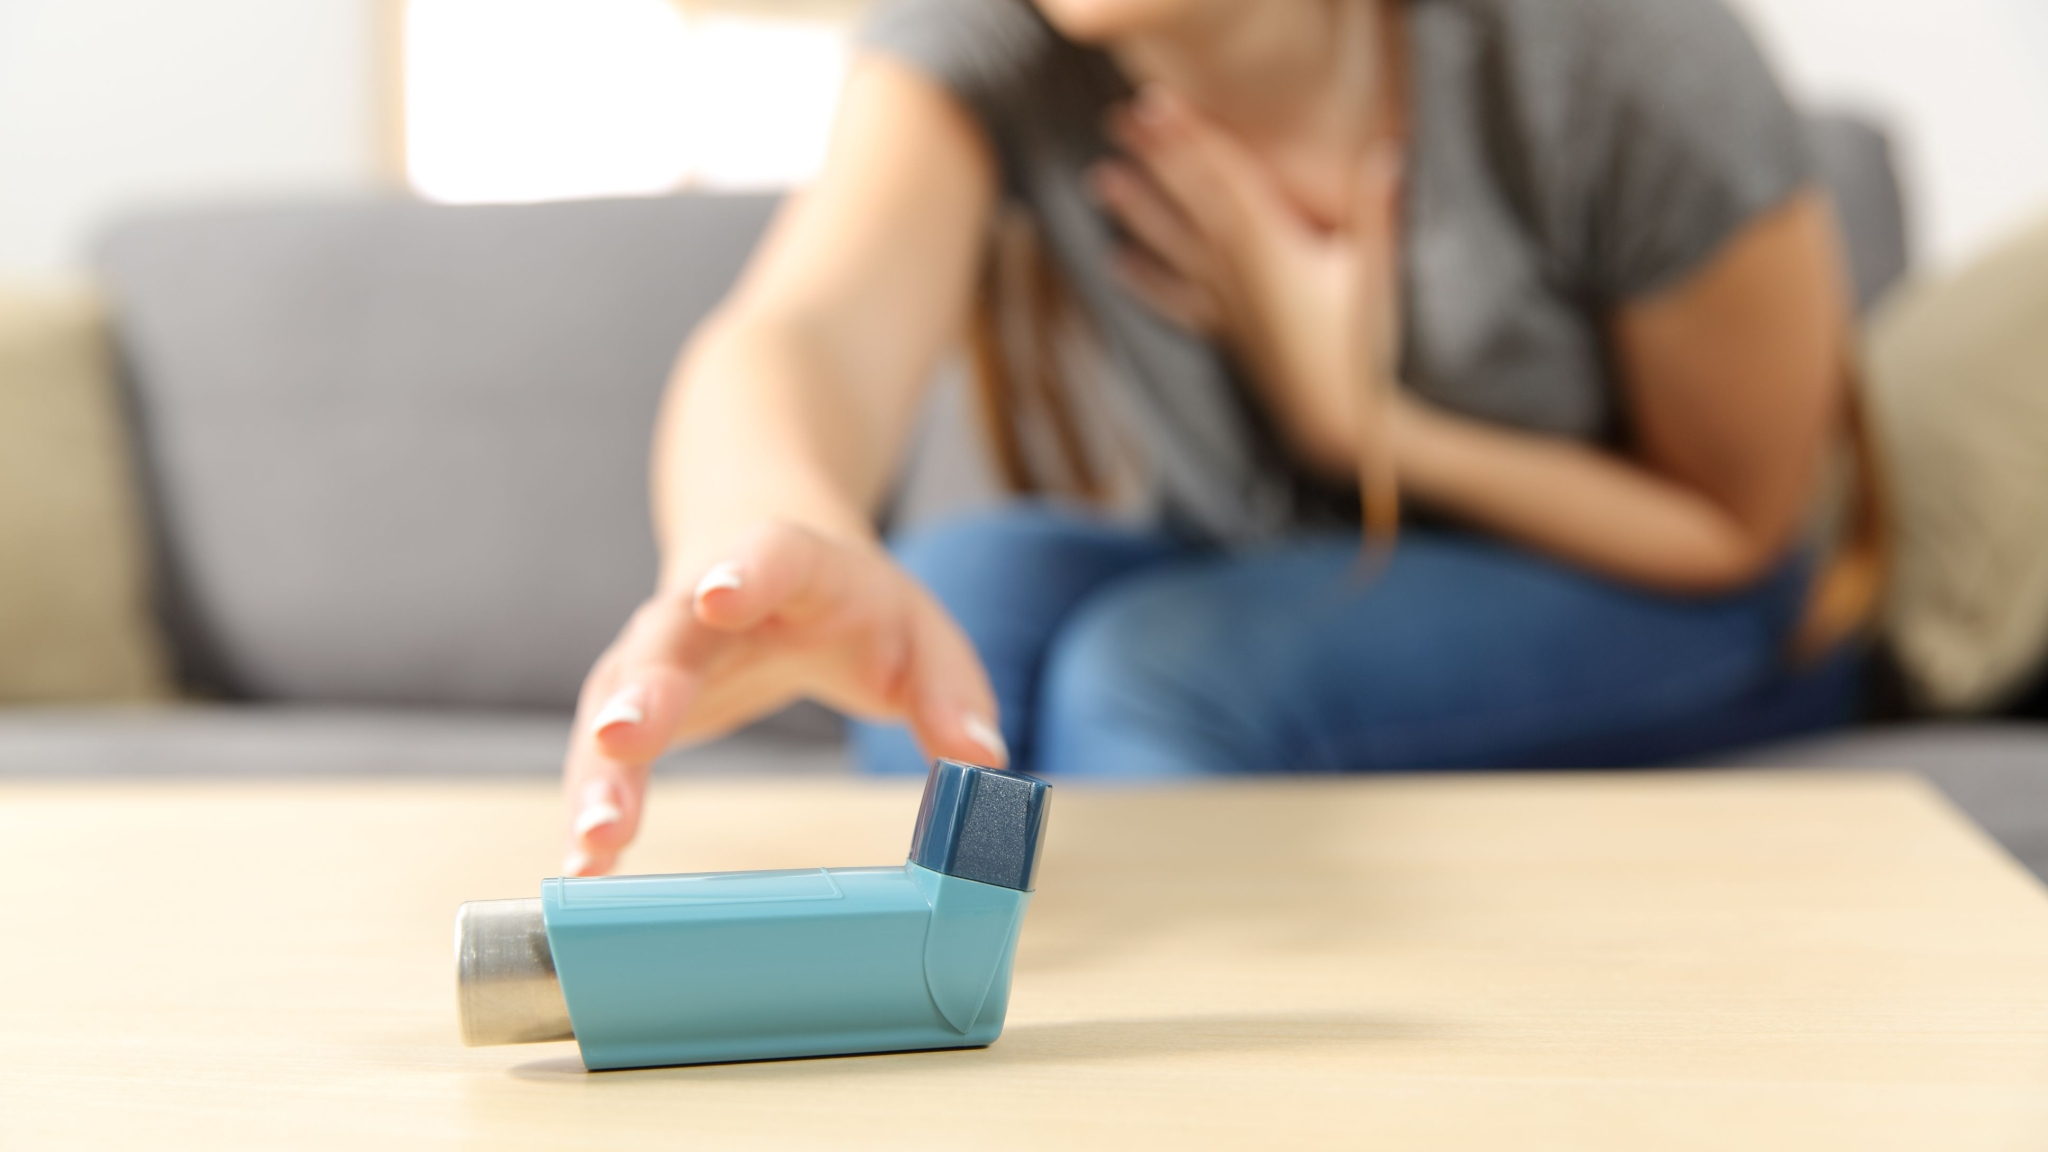 Low Level of Testosterone Could Be Linked to Asthma in Women